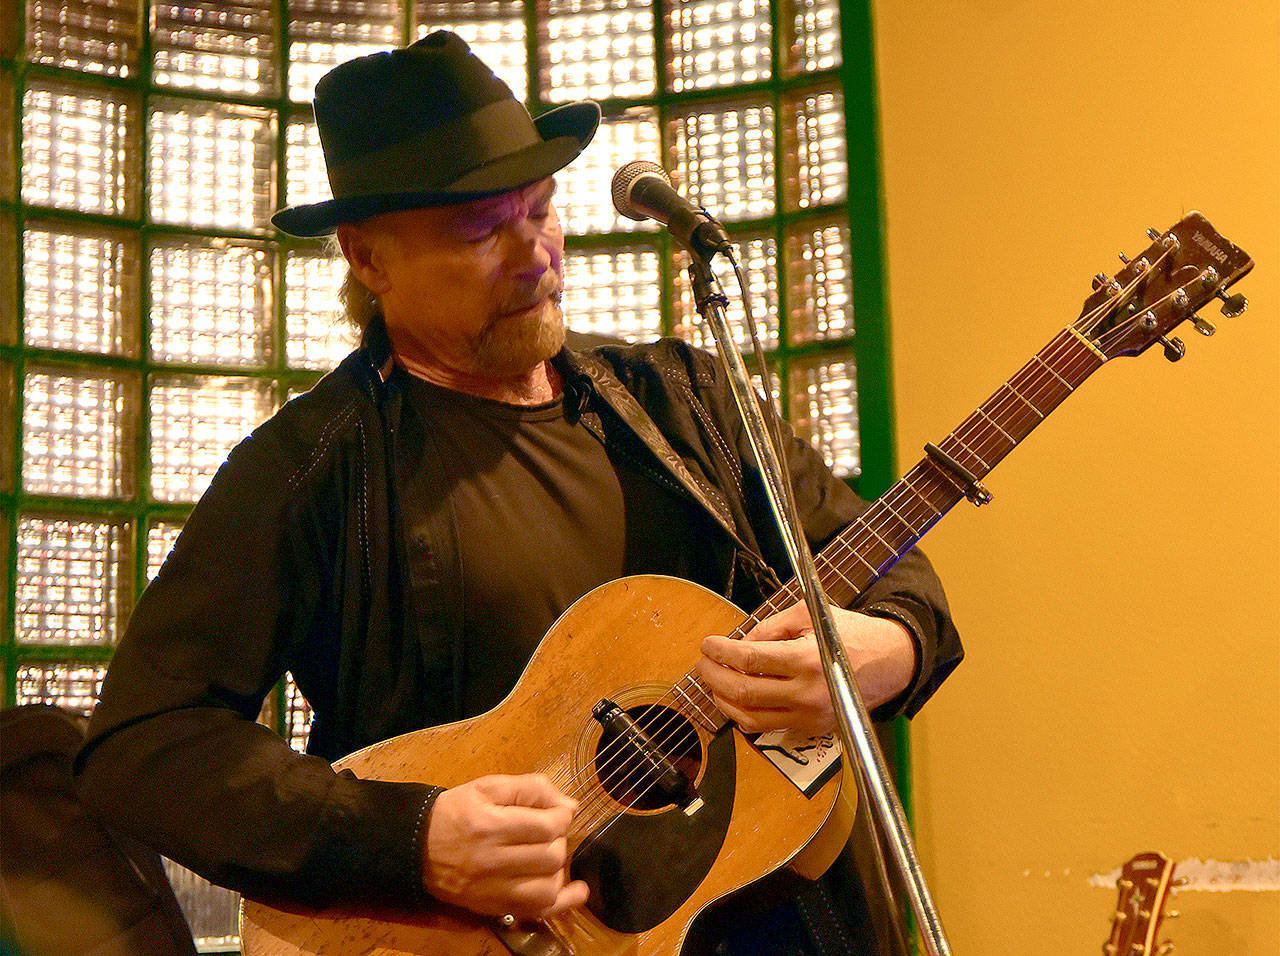 Nick Vigarino will play the Cross Border Blues concert Dec. 1 at Historic Everett Theatre.